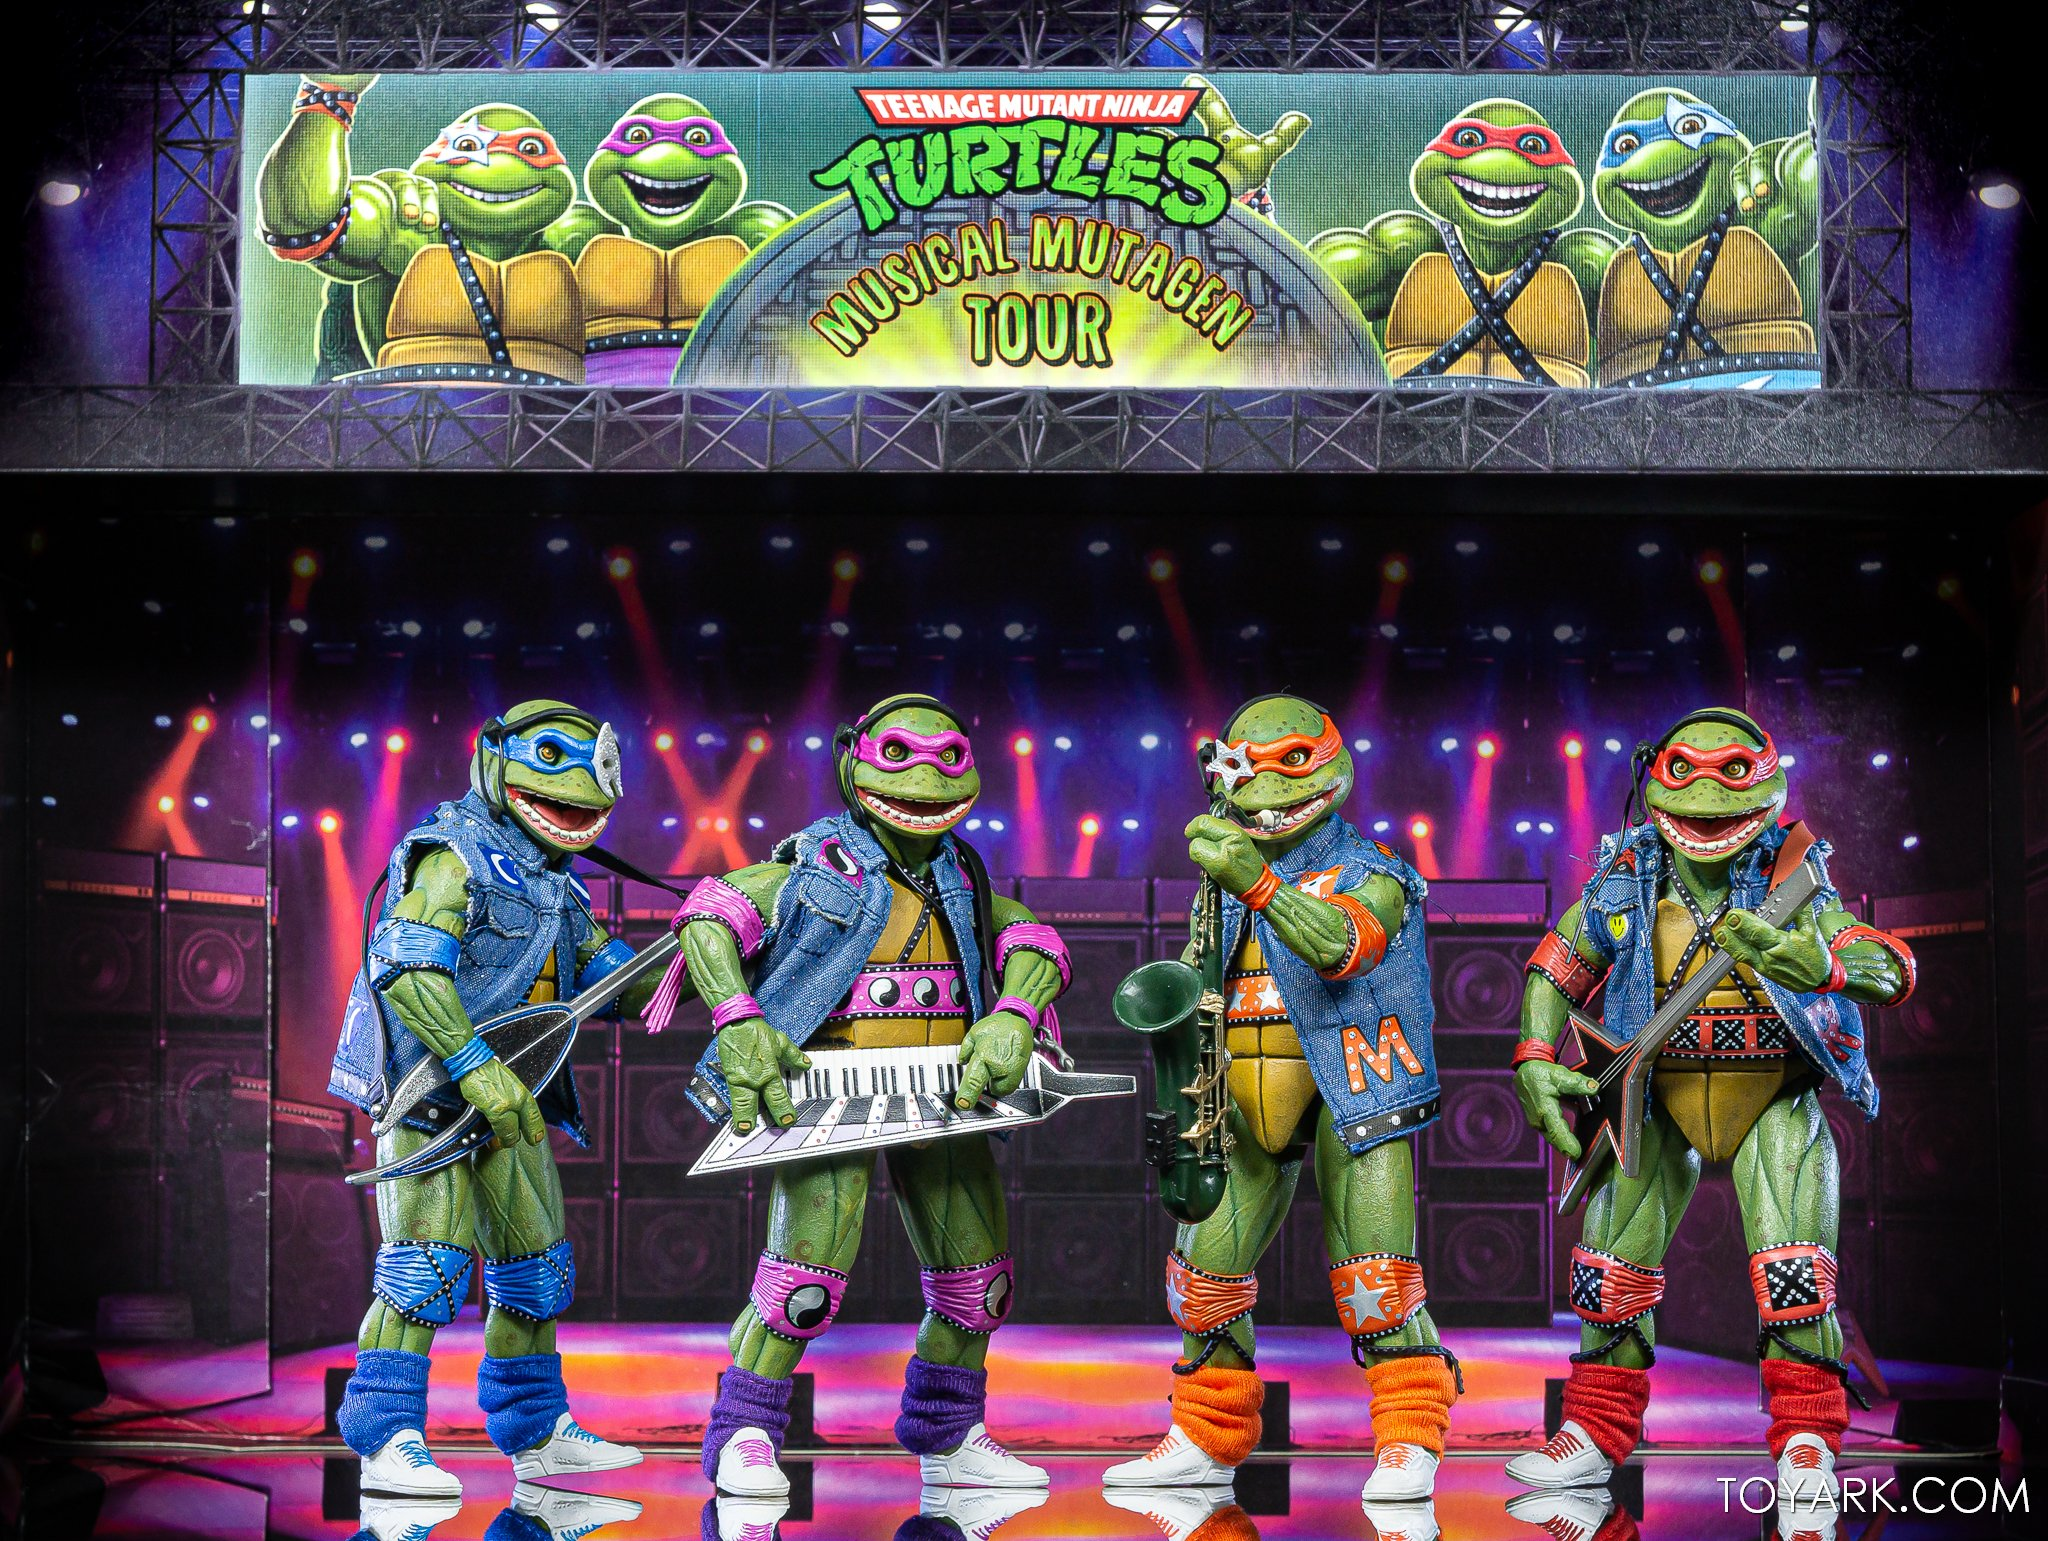 https://news.toyark.com/wp-content/uploads/sites/4/2020/07/SDCC-2020-TMNT-Musical-Mutagen-Tour-047.jpg